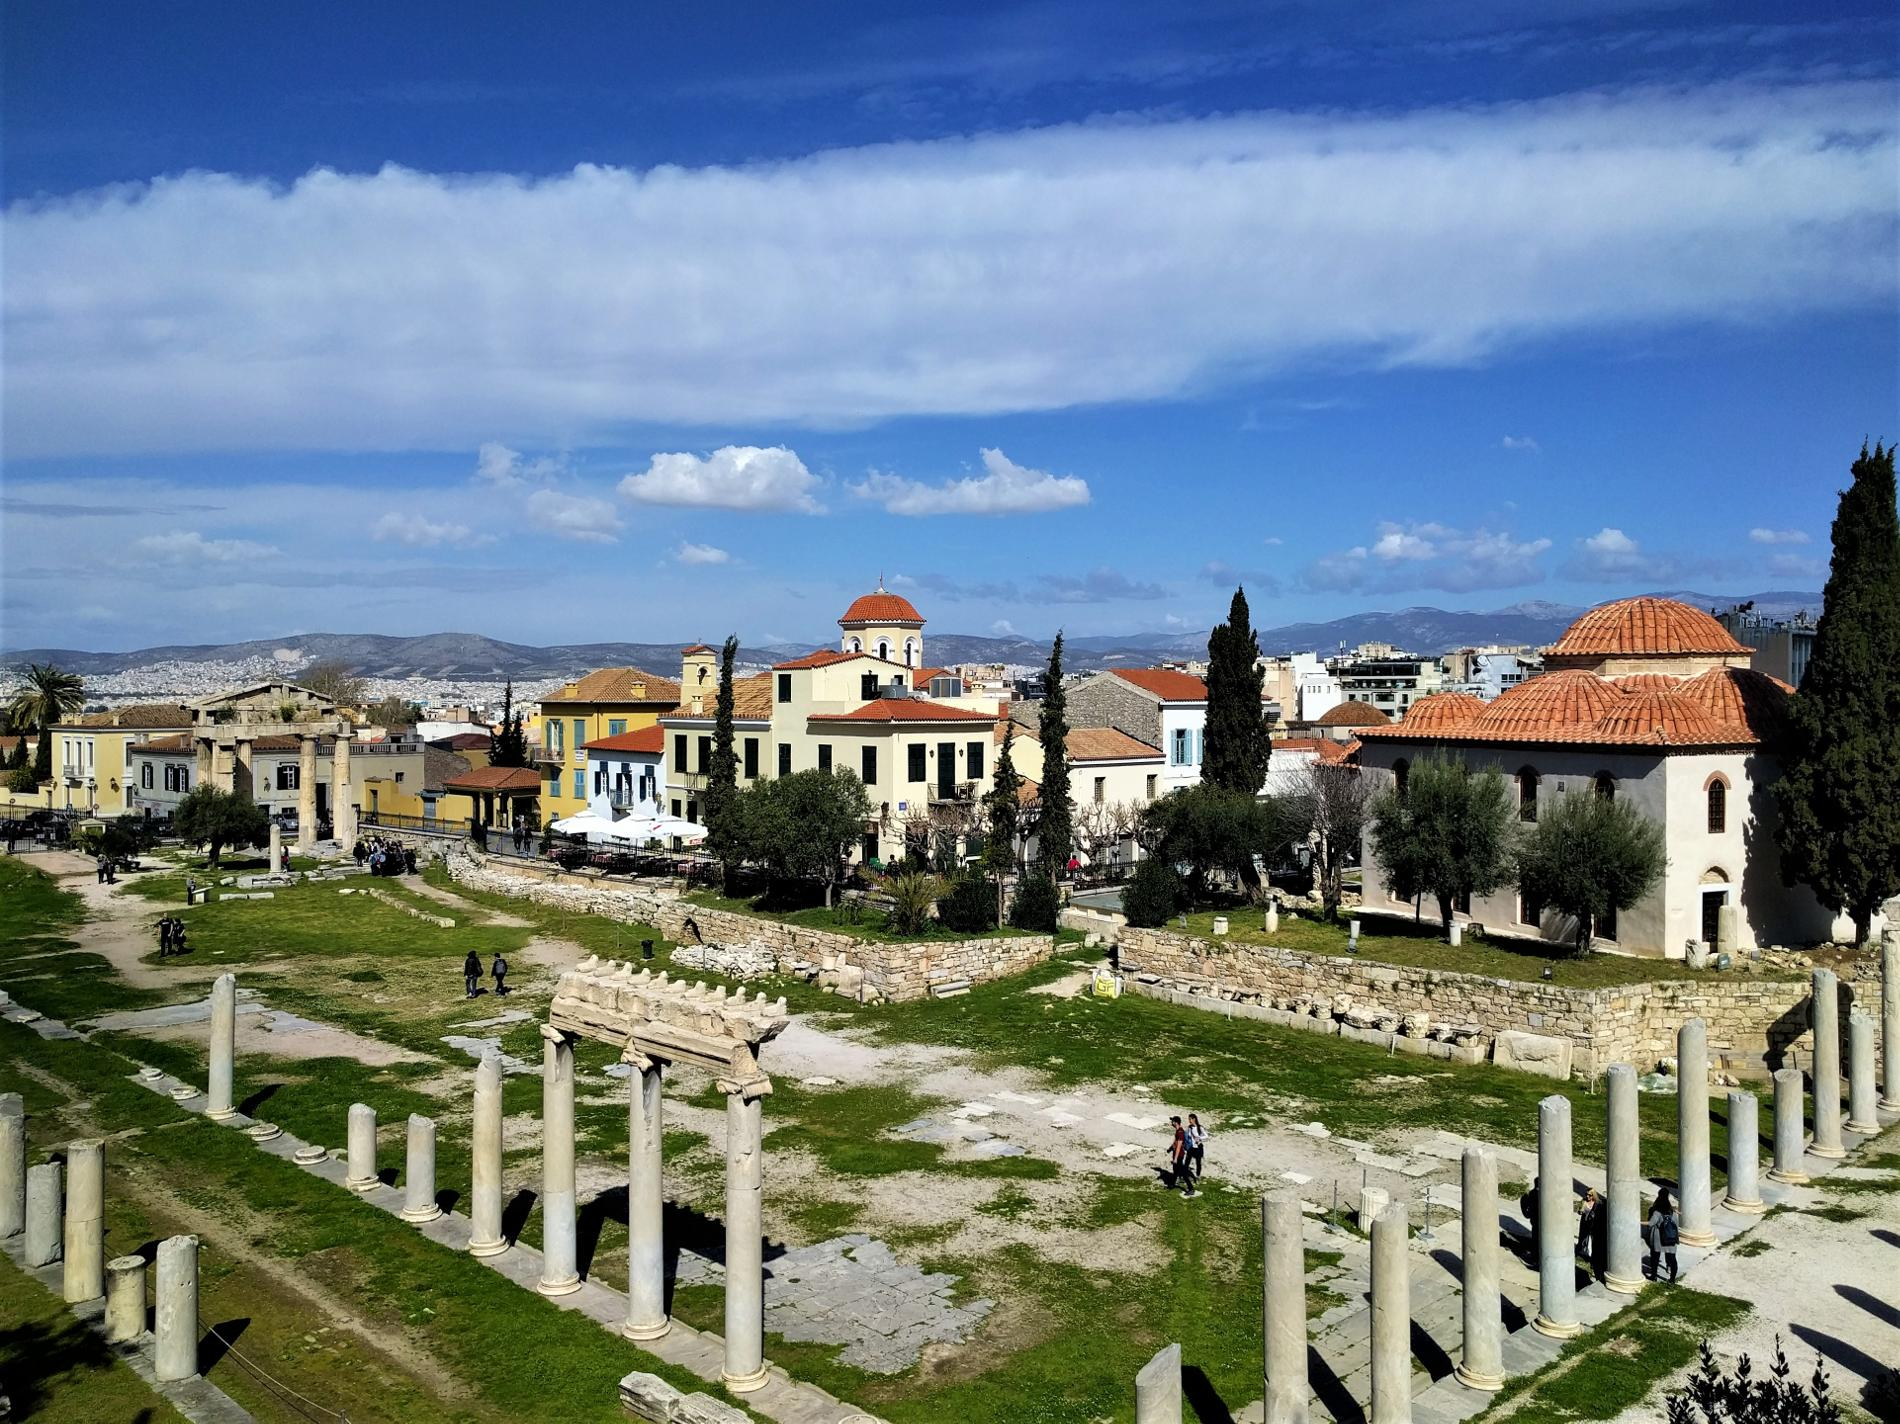 Plaka includes the majority of the must-see attractions in Athens, like the Roman Agora depicted here.